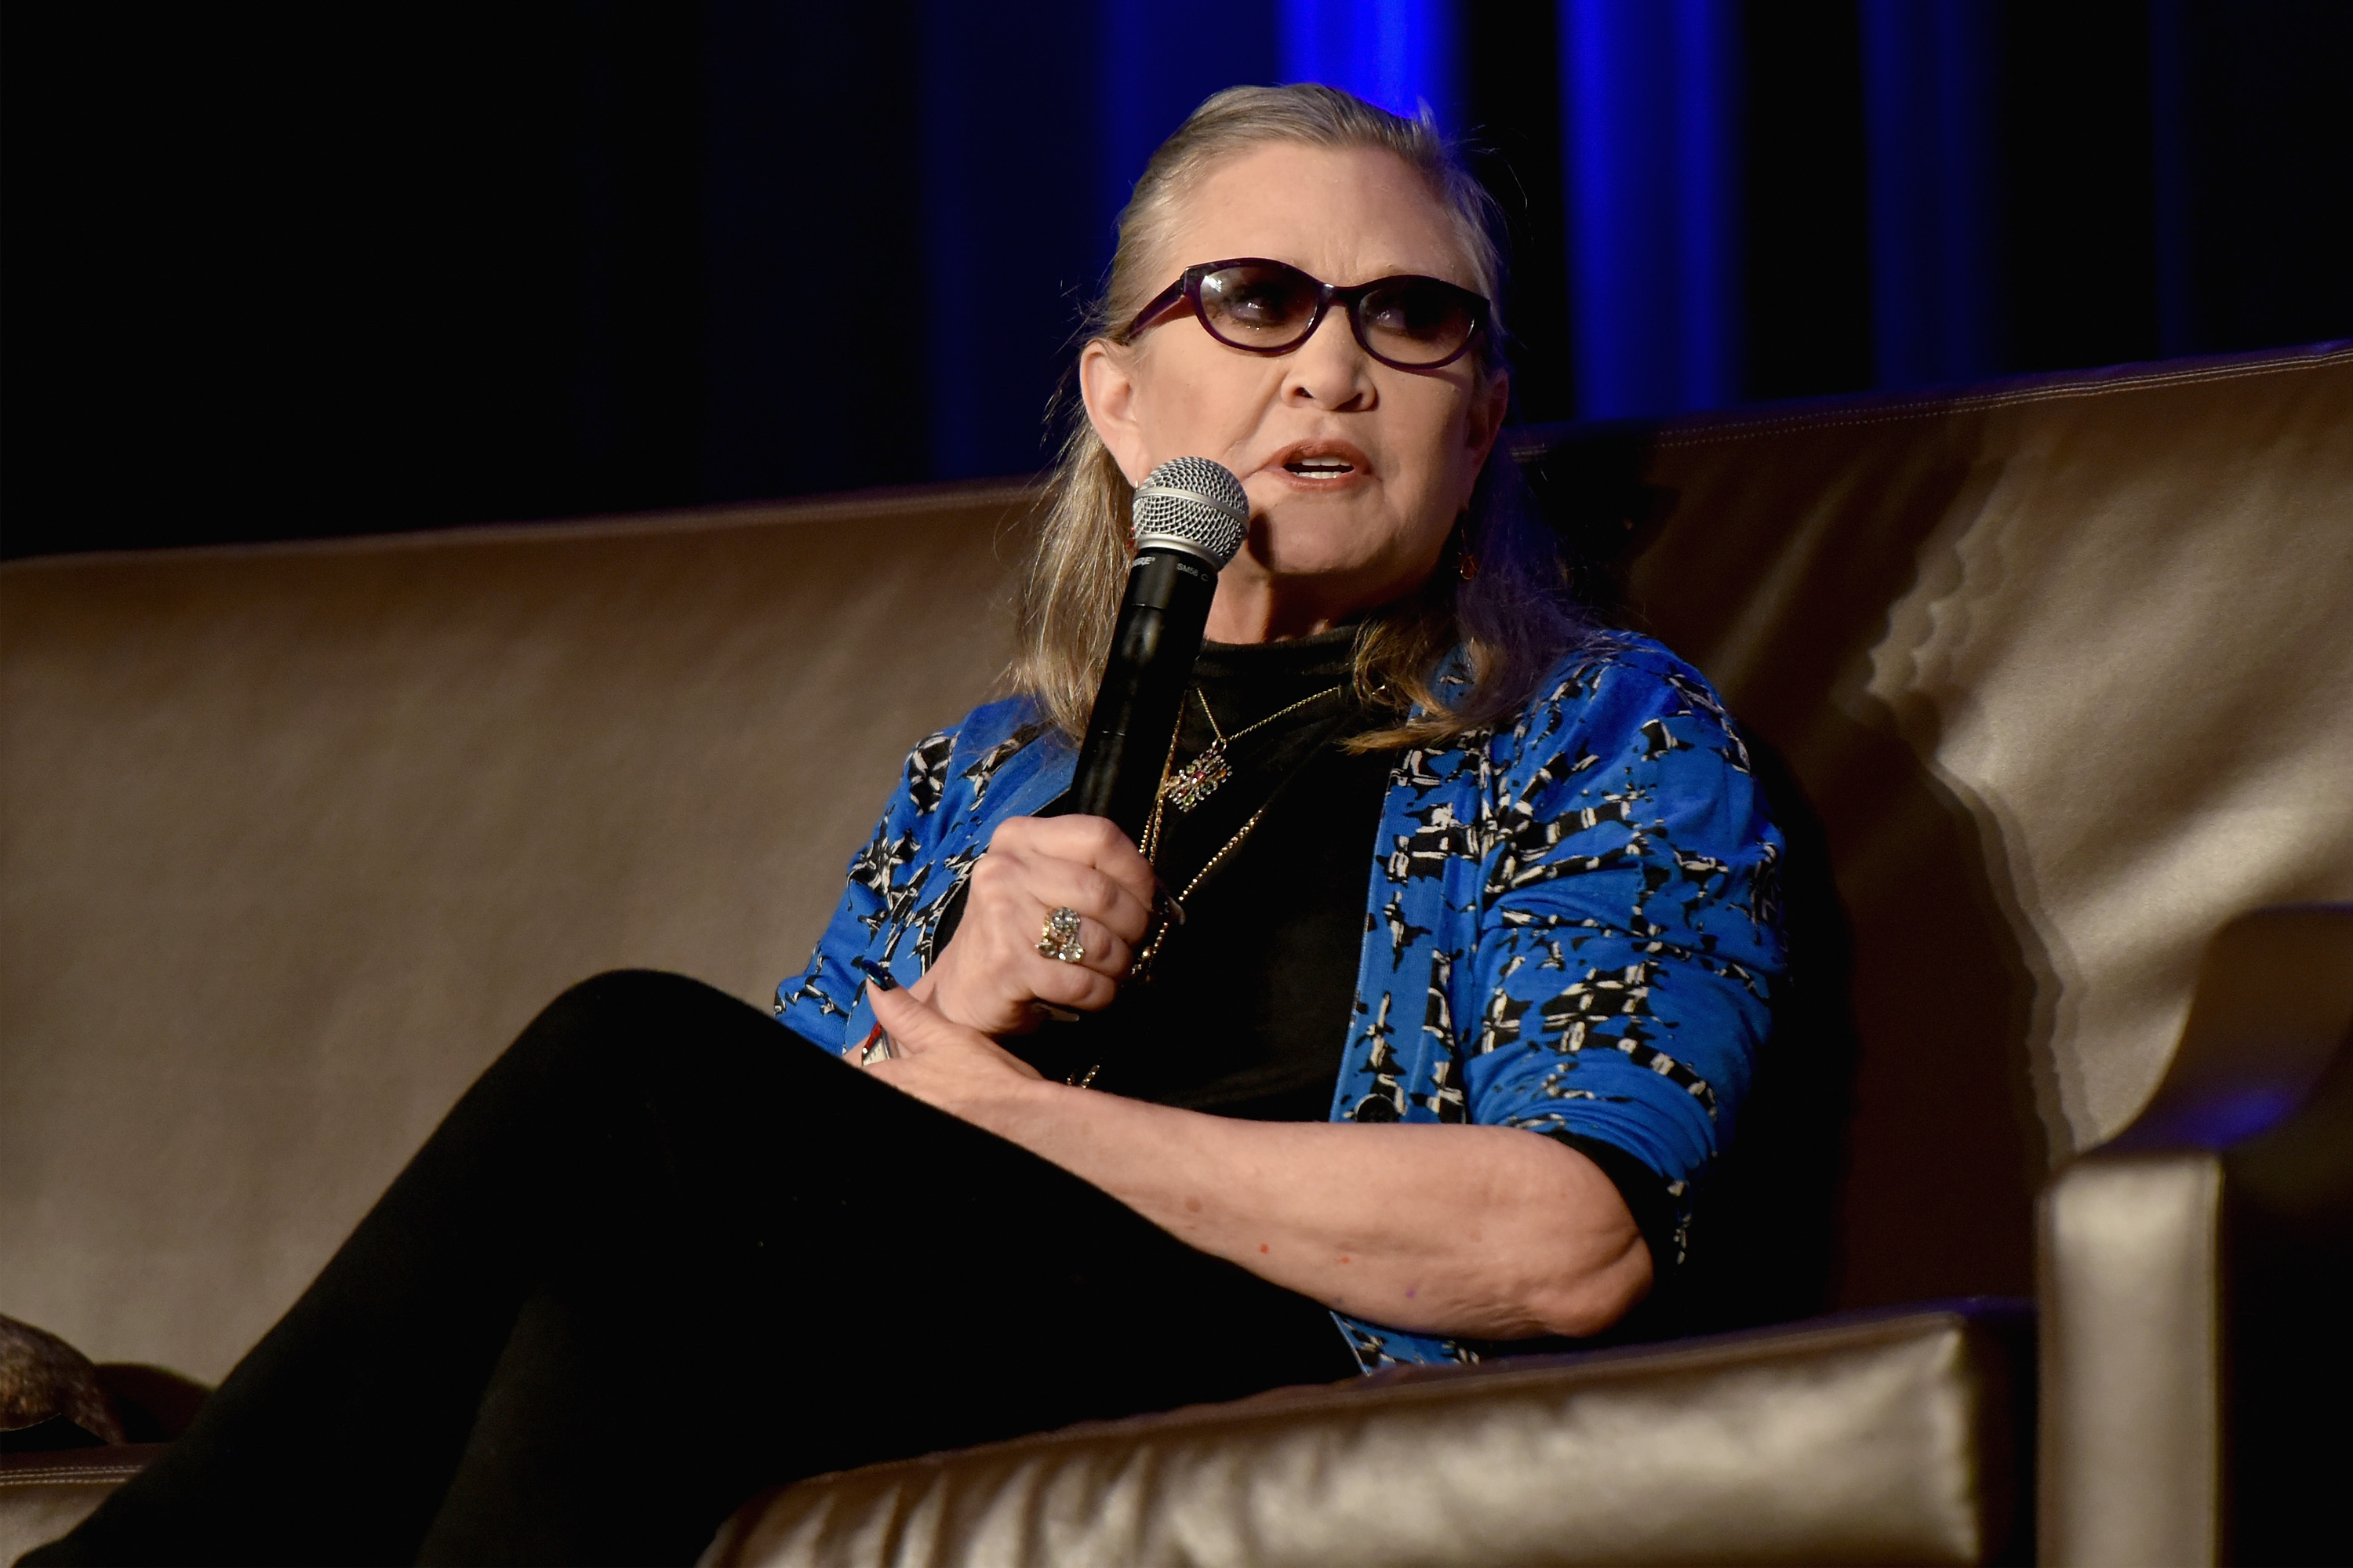 Carrie Fisher dies at 60, leaving behind a legacy of performance, writing, and advocacy